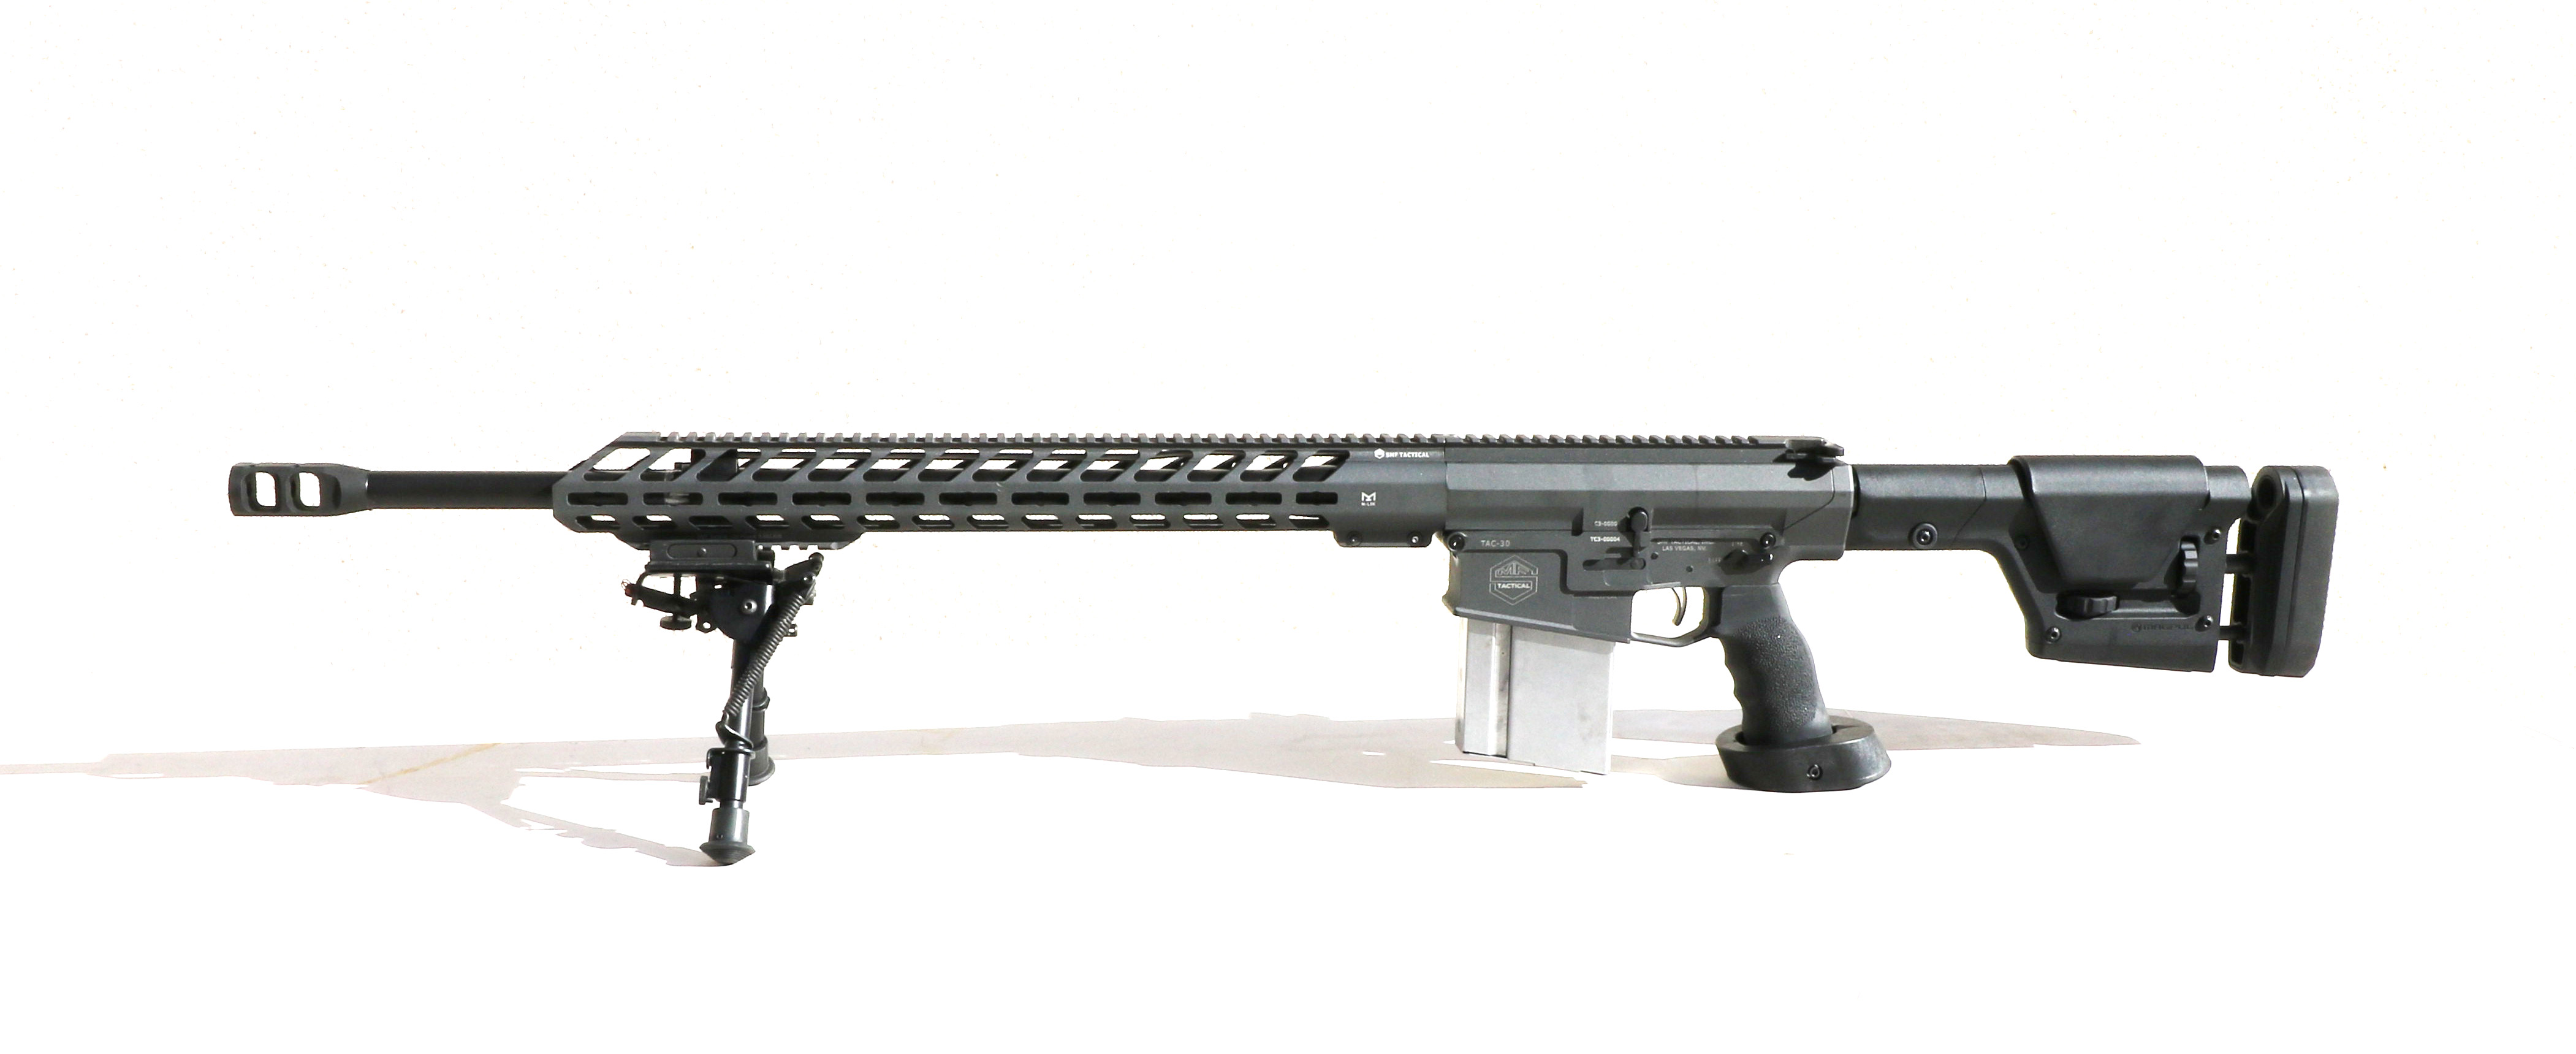 tac-30-300wm-rifle-2-smf-tactical.jpg